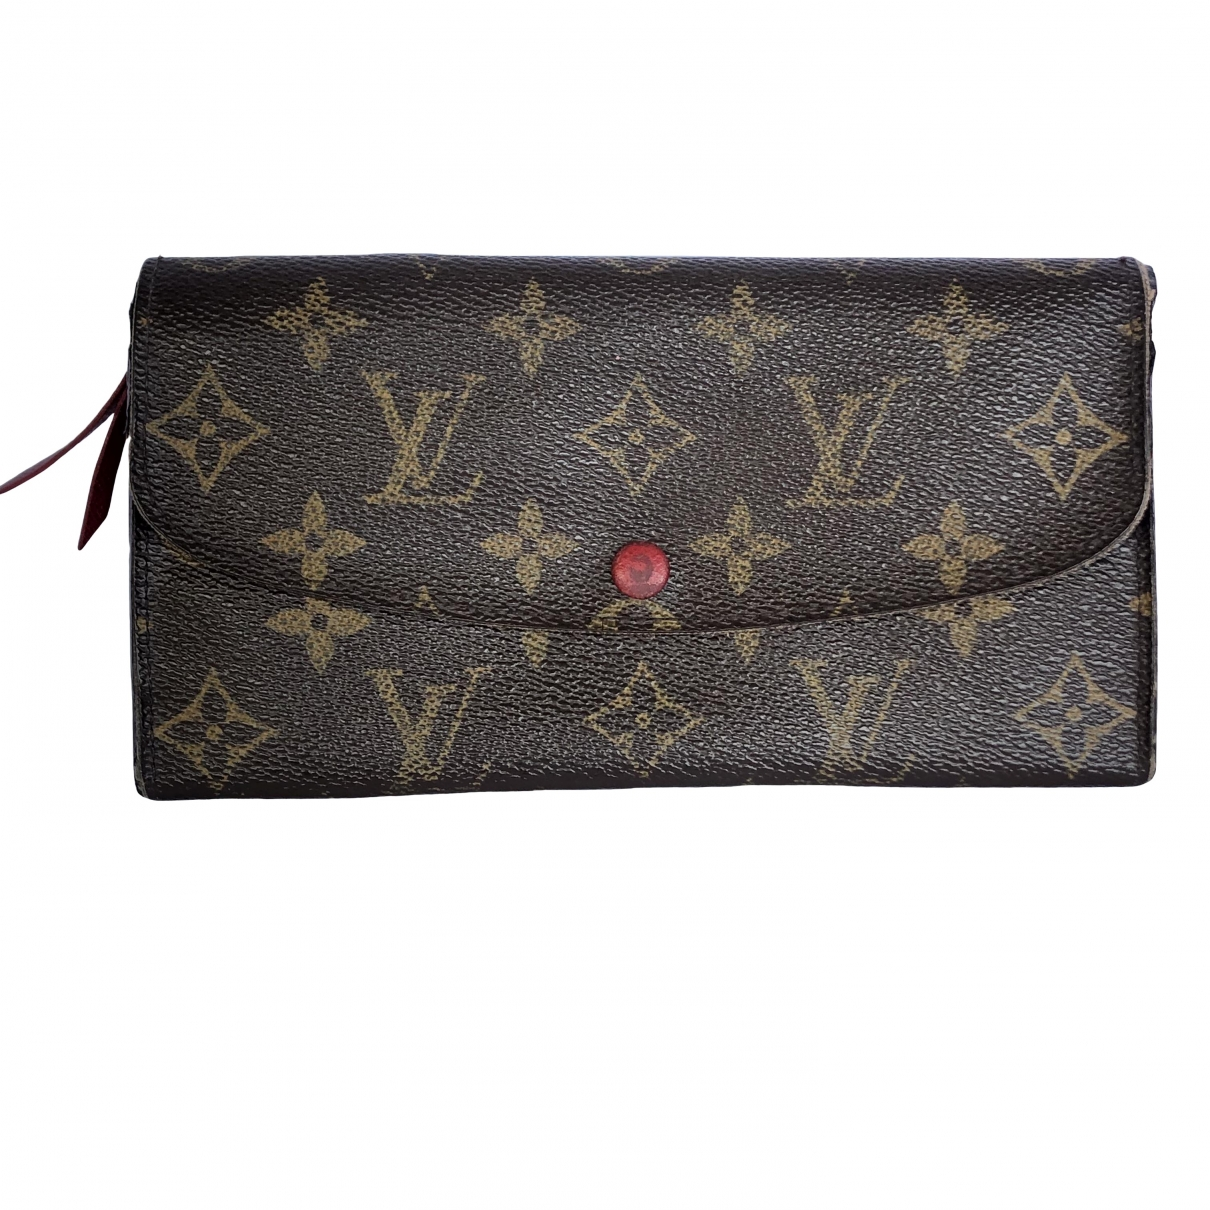 Cartera Emilie de Lona Louis Vuitton